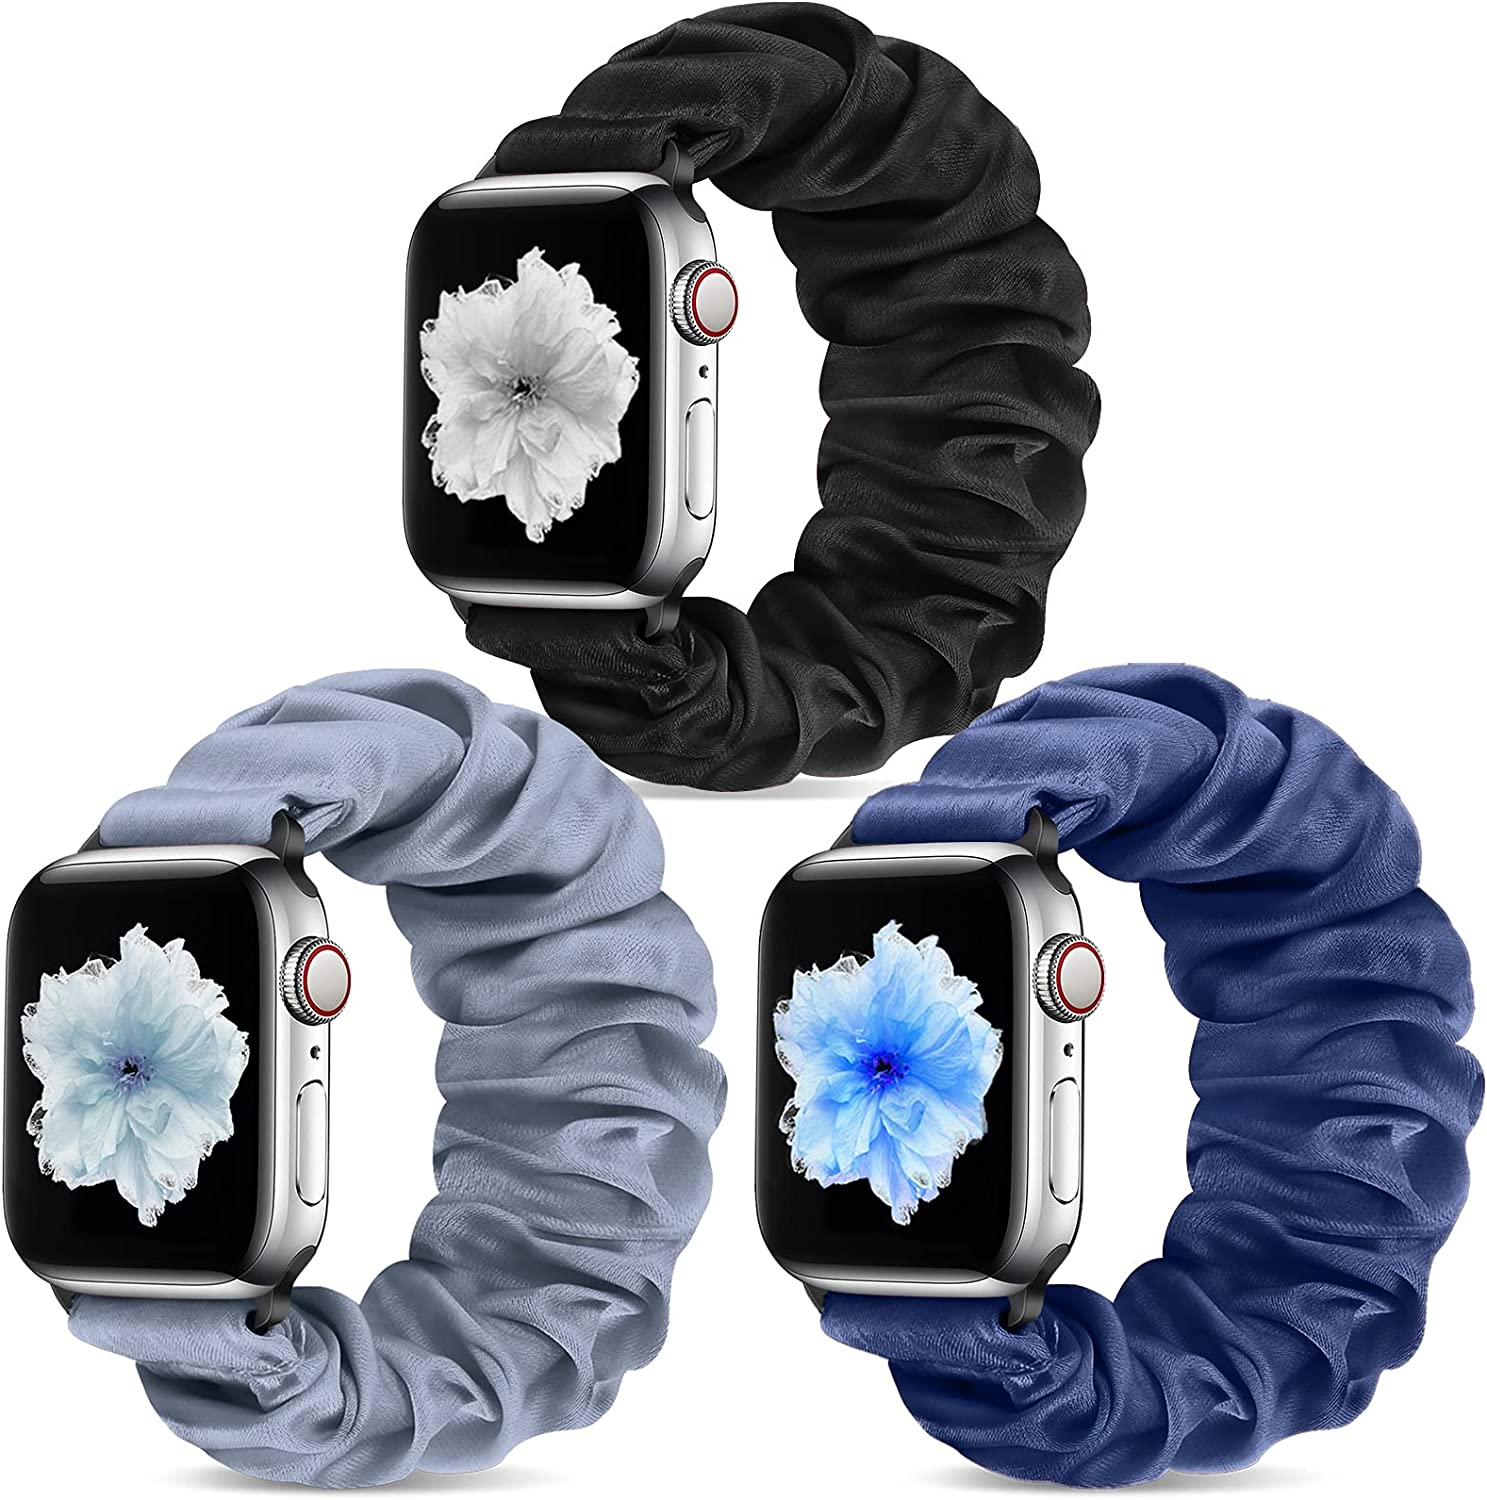 Vodtian Scrunchie Watch Band Compatible with Apple Watch 42mm 44mm, Solo Loop Elastic Replacement Watch Strap for iwatch Series 6/5/4/3/2/1, SE, Soft Fabric Wristbands for Women Girl